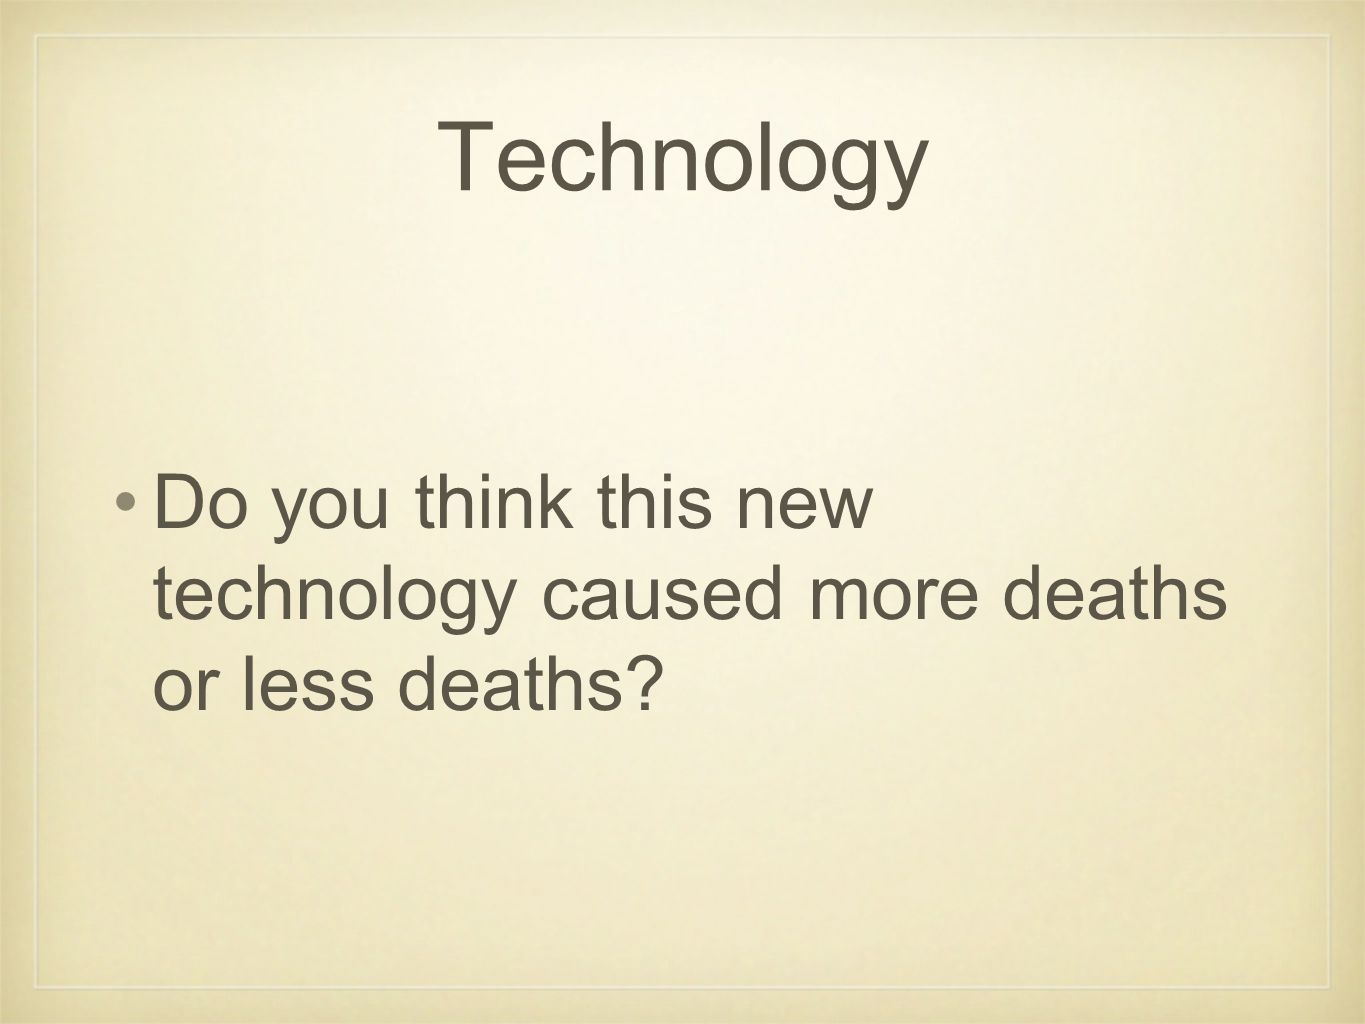 Do you think this new technology caused more deaths or less deaths